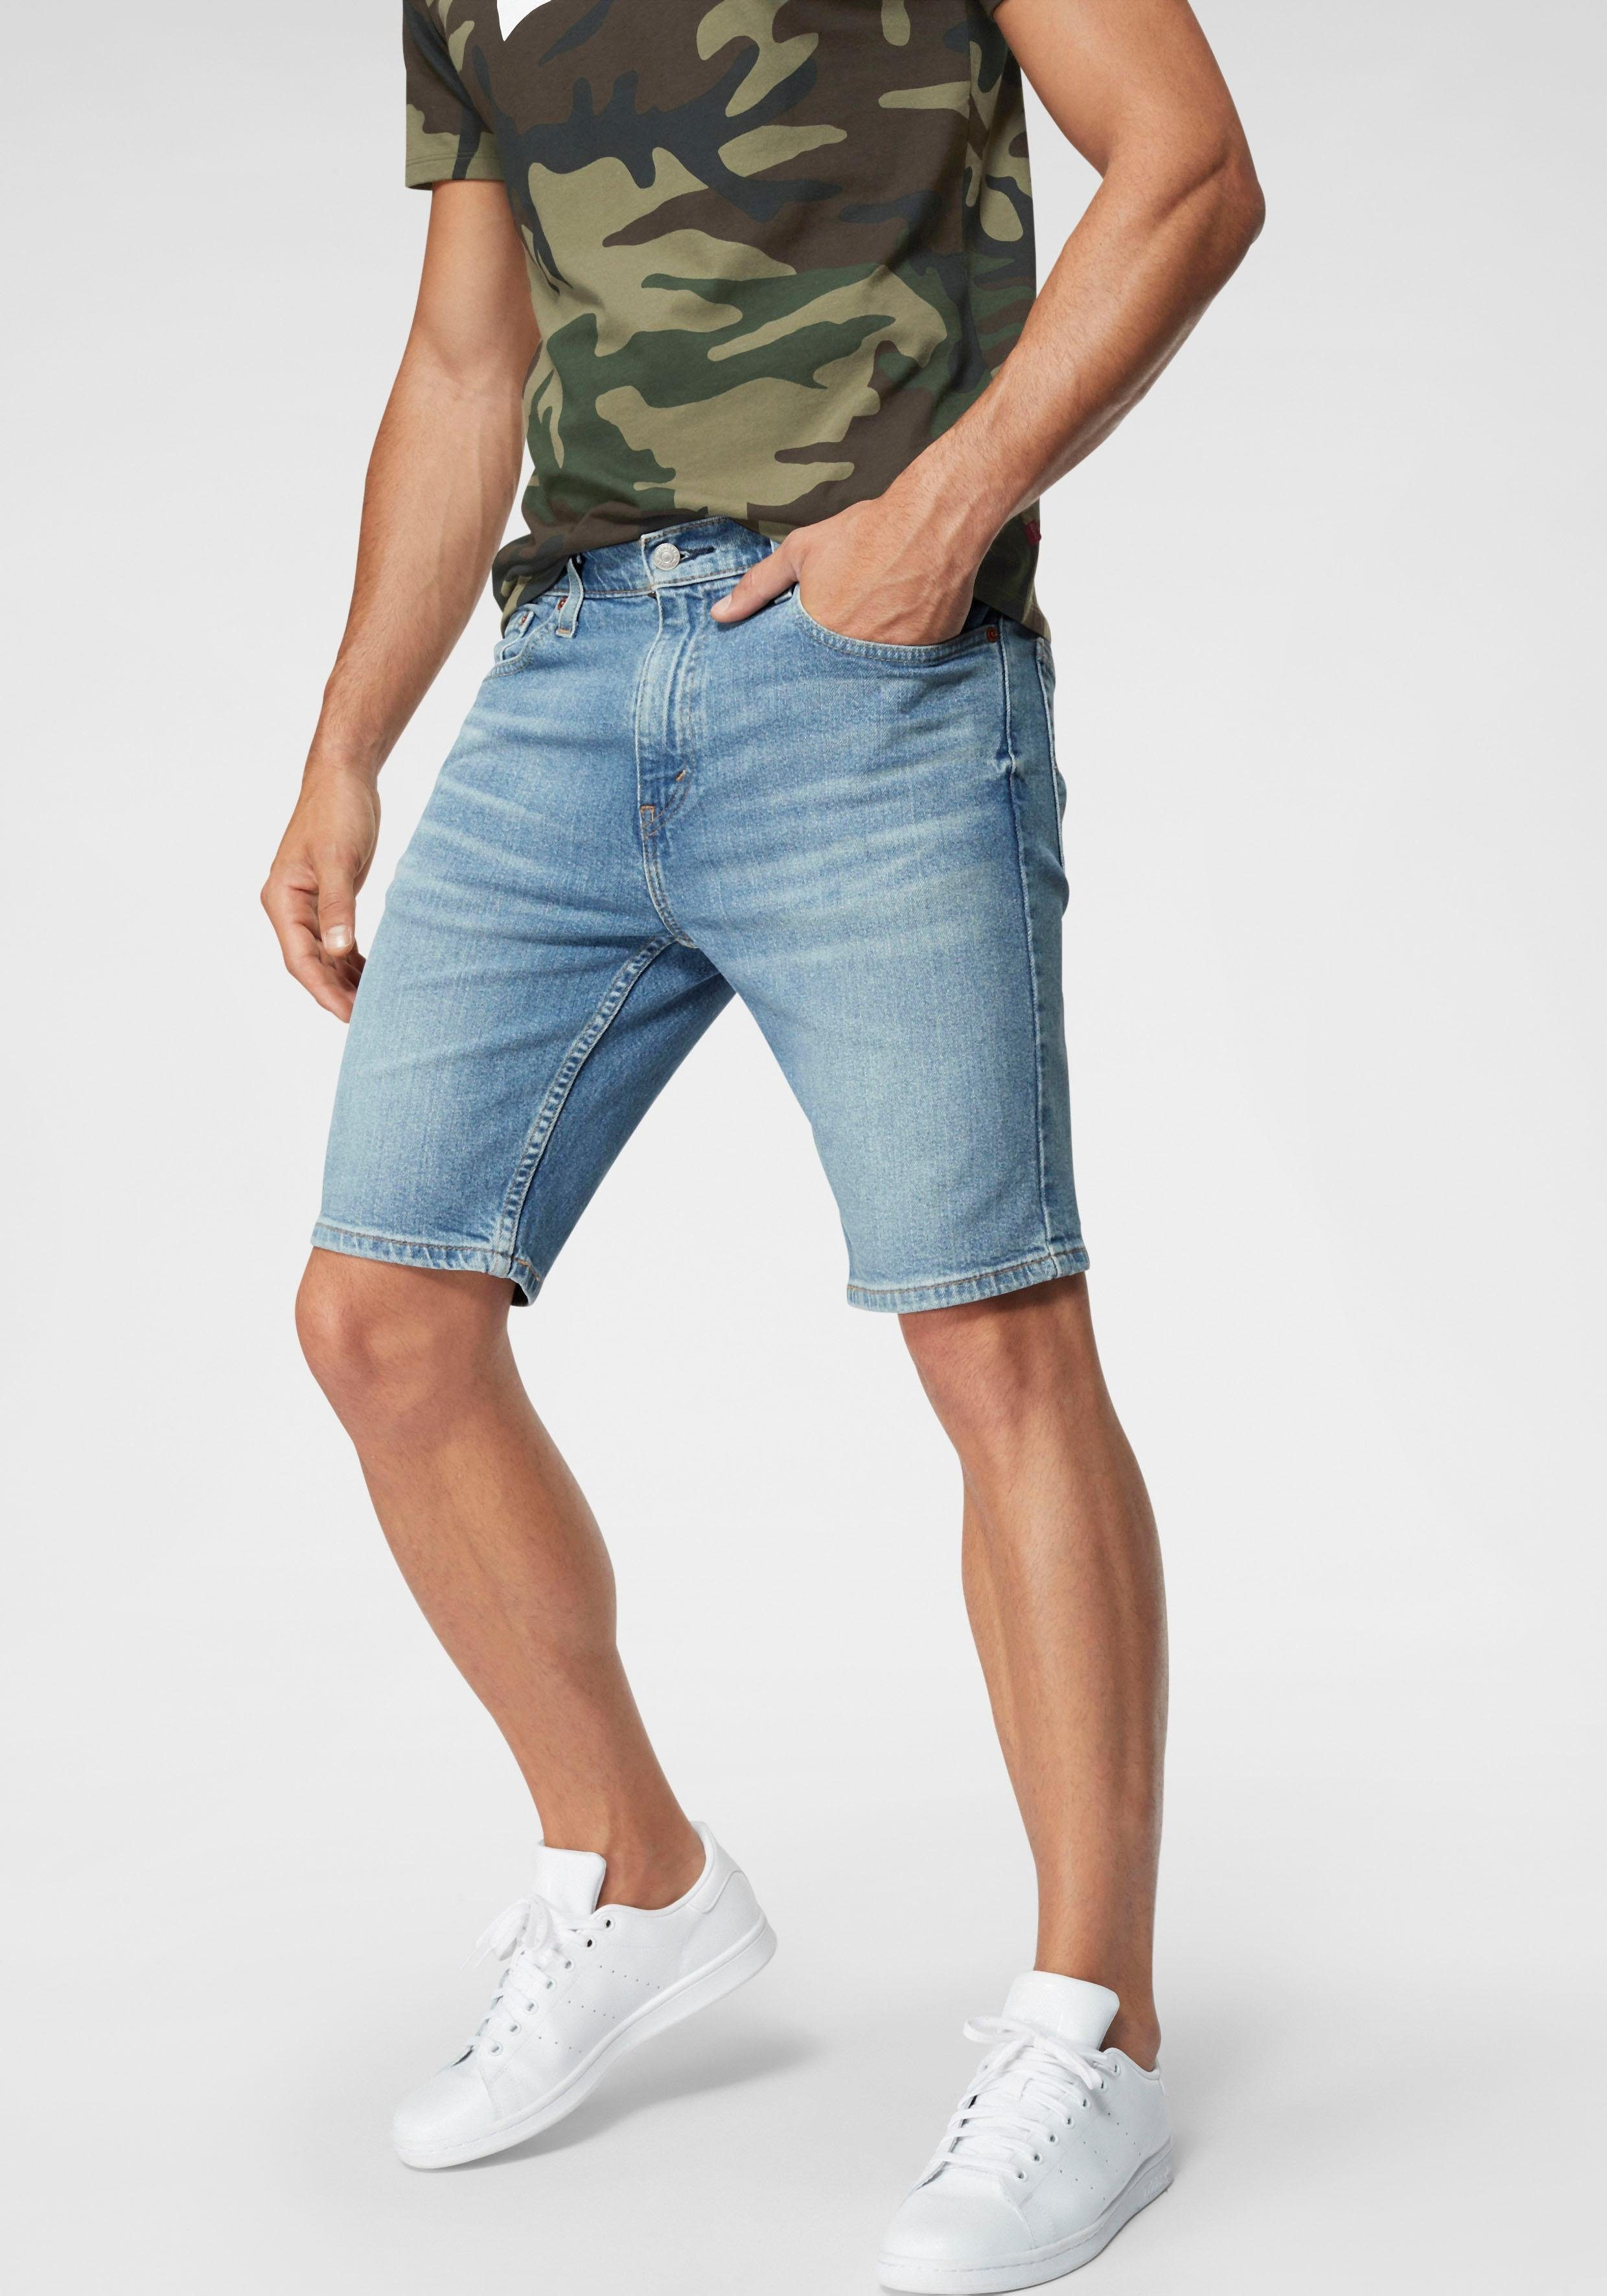 Levi's® Jeansshorts »502T«, Tapered fit online kaufen | OTTO